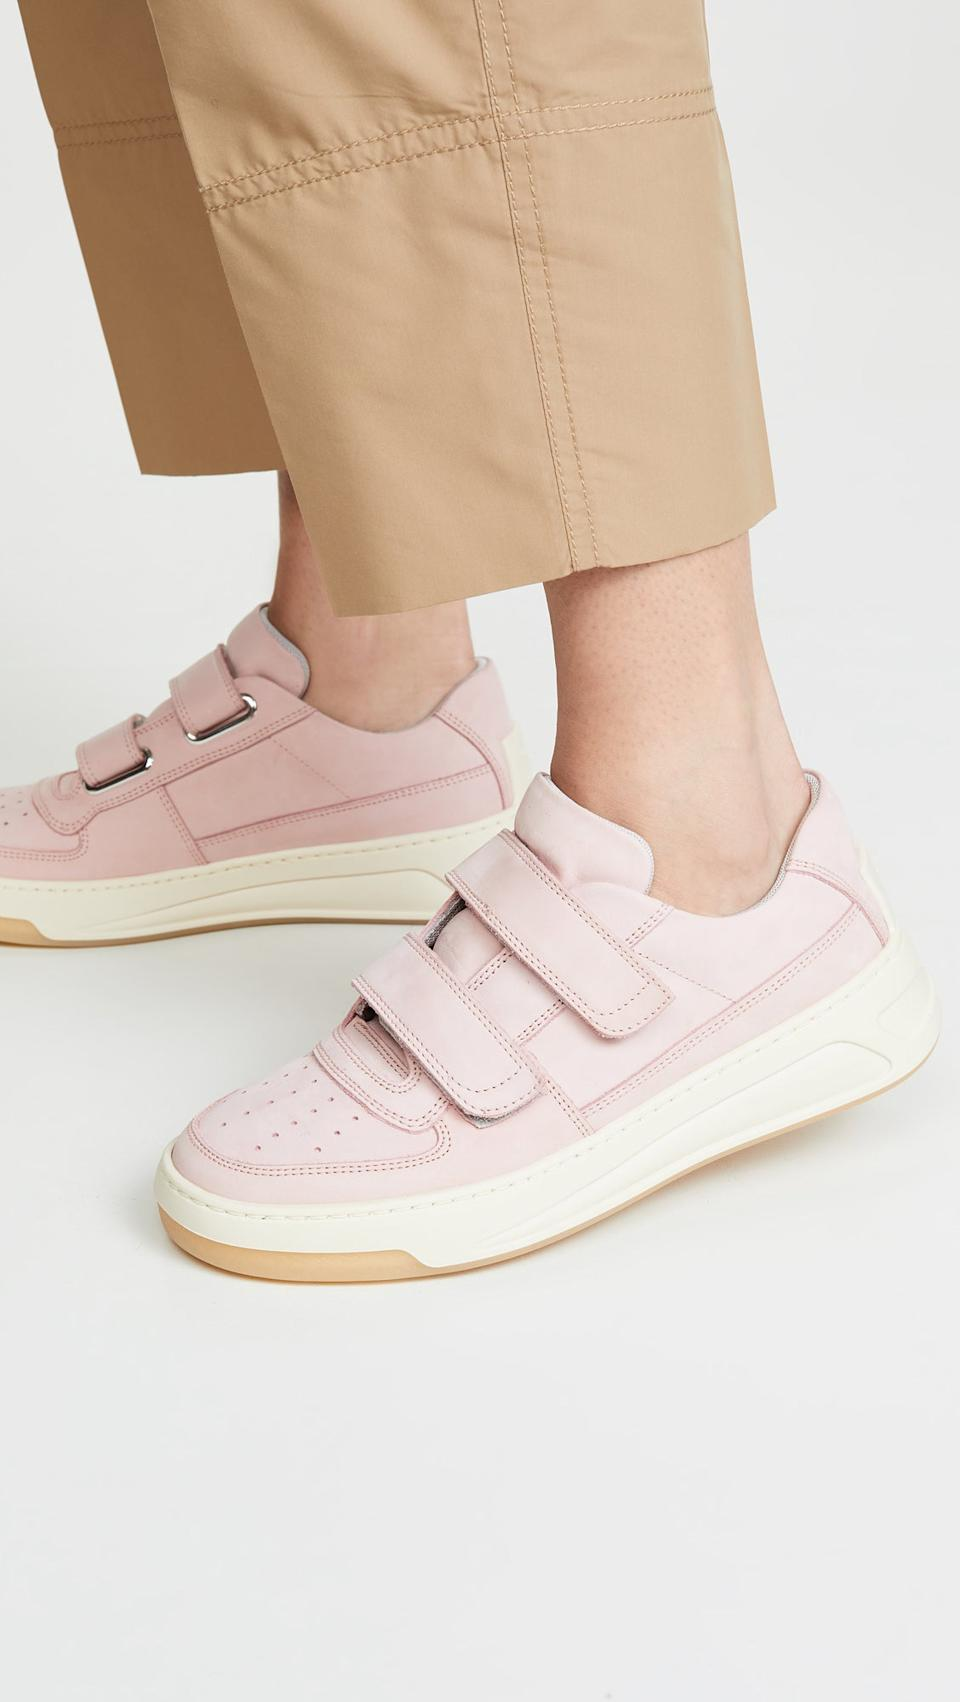 """<h3><a href=""""https://www.shopbop.com/steffey-nubuk-sneaker-acne-studios/vp/v=1/1596264328.htm"""" rel=""""nofollow noopener"""" target=""""_blank"""" data-ylk=""""slk:Acne Studios Steffey Nubuck Sneakers"""" class=""""link rapid-noclick-resp"""">Acne Studios Steffey Nubuck Sneakers</a></h3><br>""""Trainers, for sure! I really like ones with velcro, for easy on and off — mine are Acne Studios!"""" <em>– Sissi, travels a few times per year</em><br><br><strong>Acne Studios</strong> Steffey Nubuck Sneakers, $, available at <a href=""""https://www.shopbop.com/steffey-nubuk-sneaker-acne-studios/vp/v=1/1596264328.htm"""" rel=""""nofollow noopener"""" target=""""_blank"""" data-ylk=""""slk:Shopbop"""" class=""""link rapid-noclick-resp"""">Shopbop</a>"""